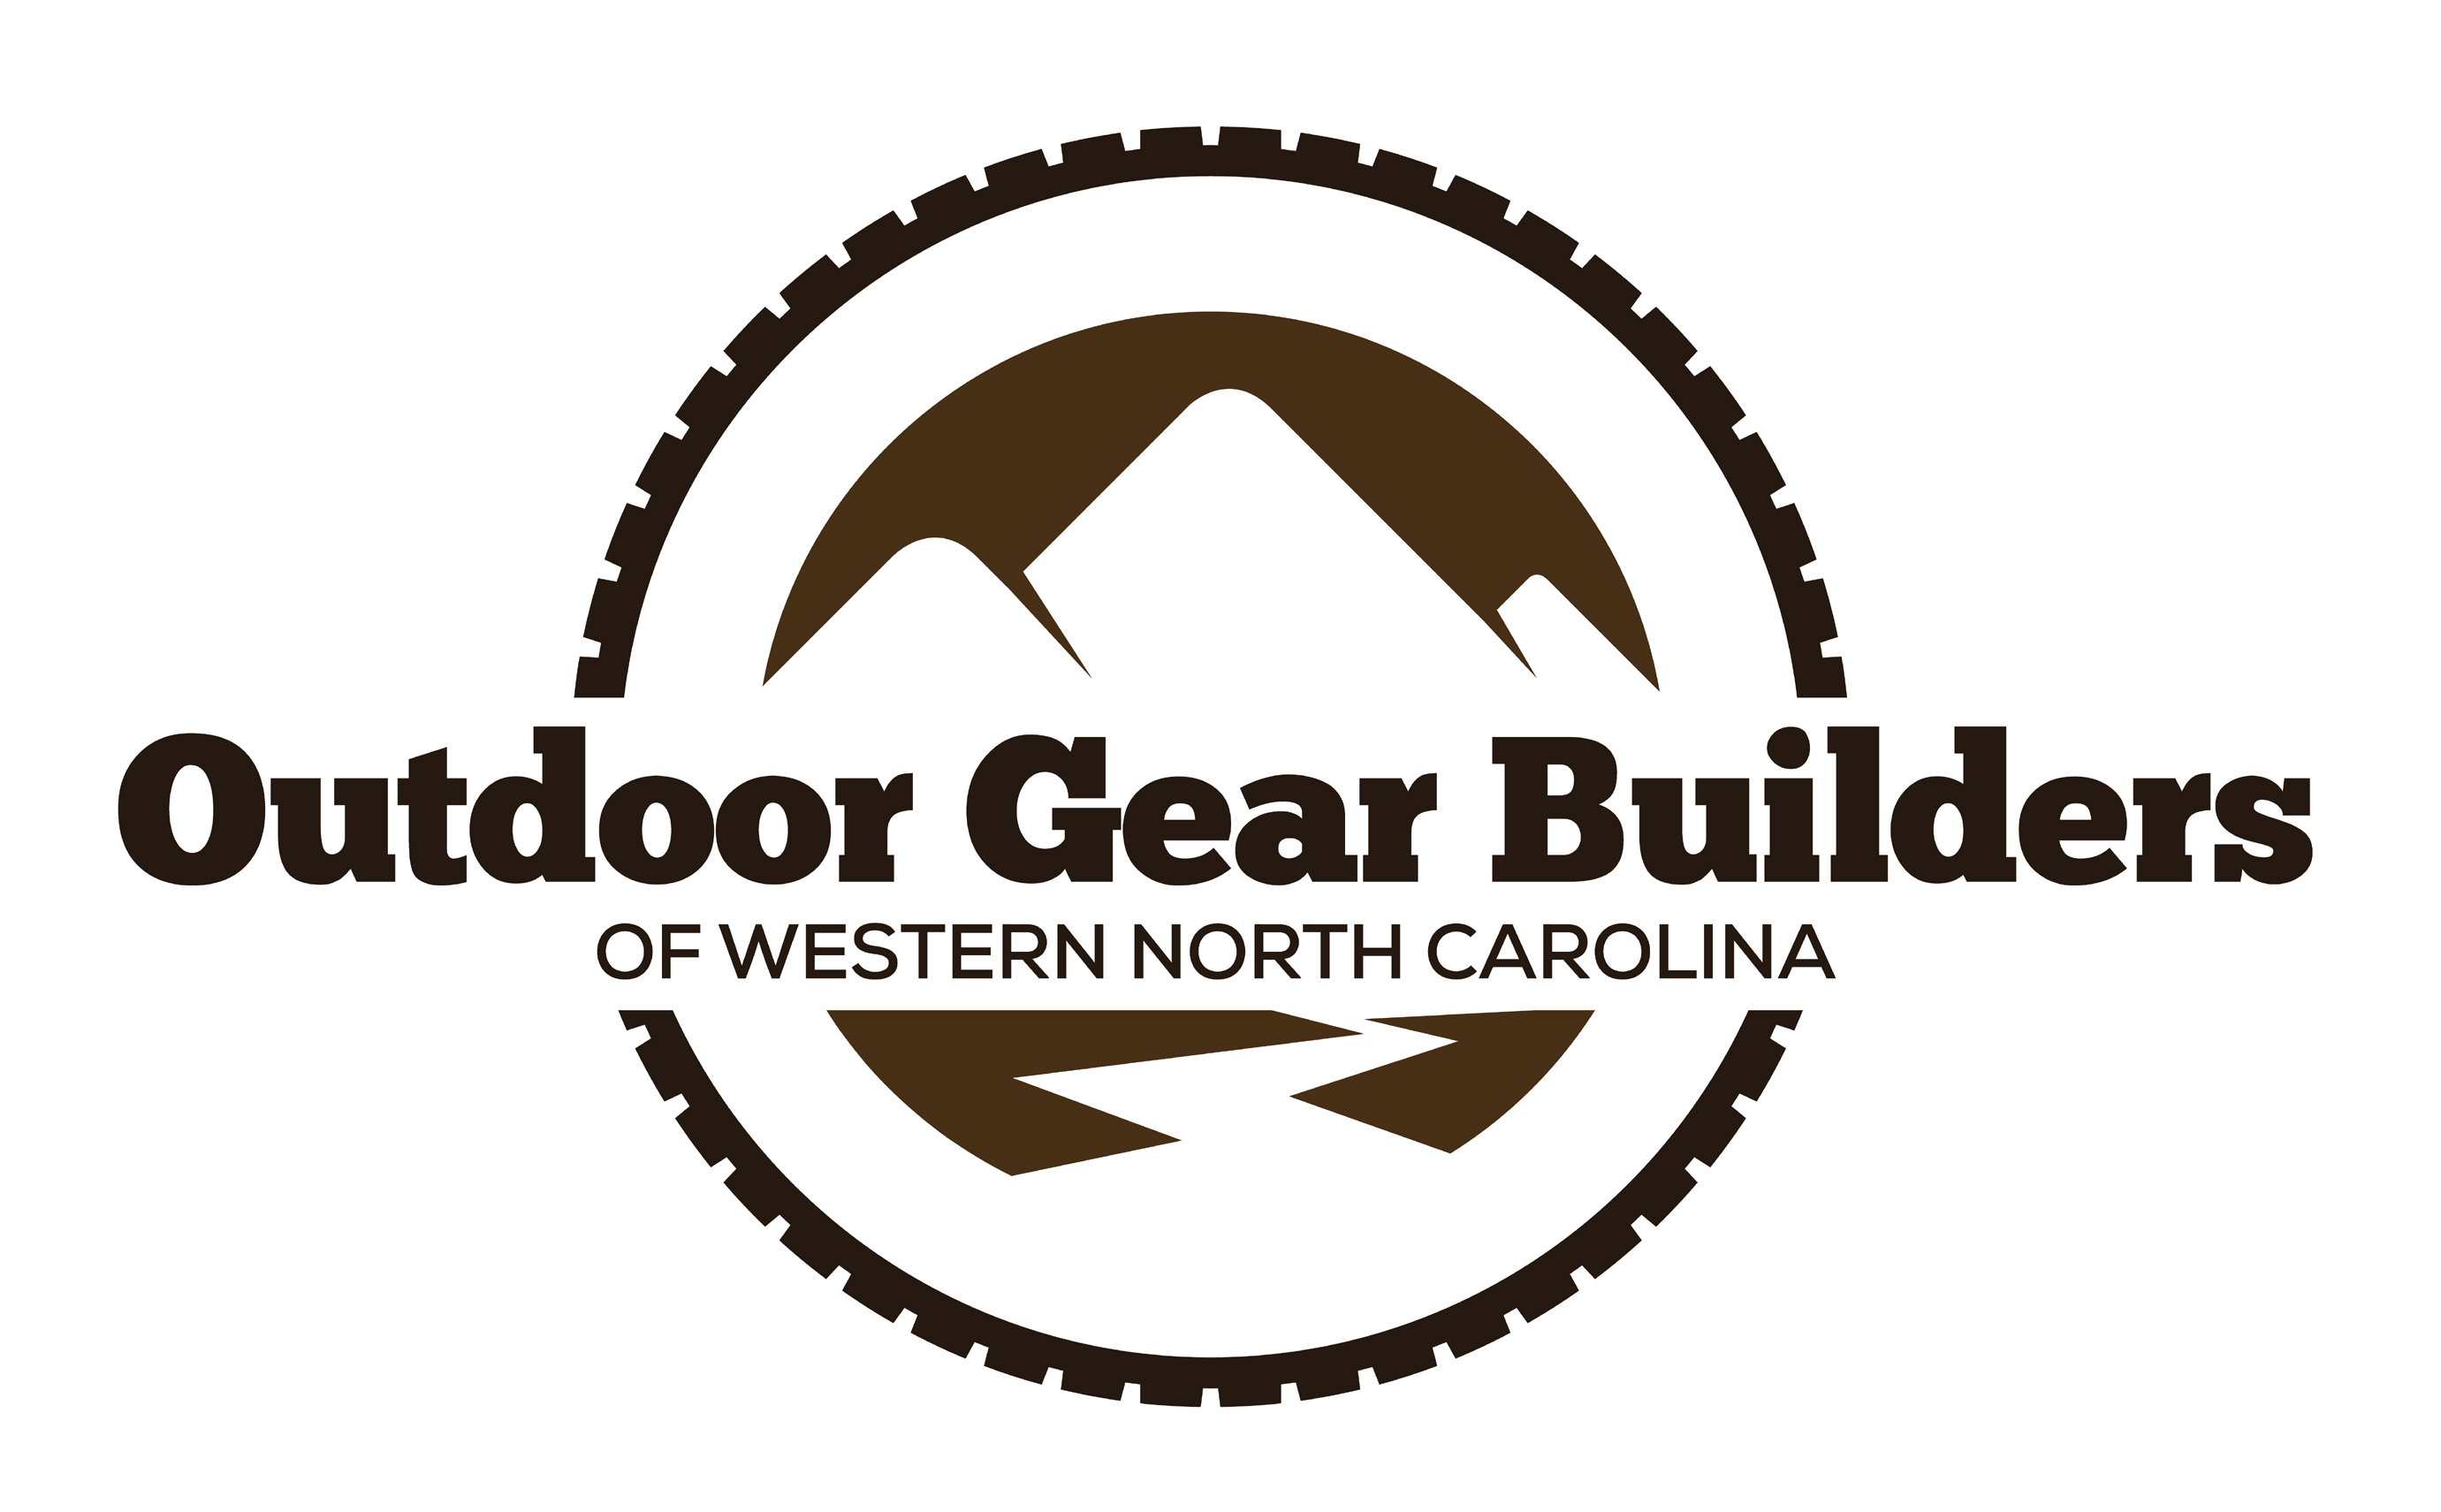 SylvanSport Uniting with 15 Outdoor Gear Builders of Western North Carolina  at Mountain Sports Festival b28c09958ba2